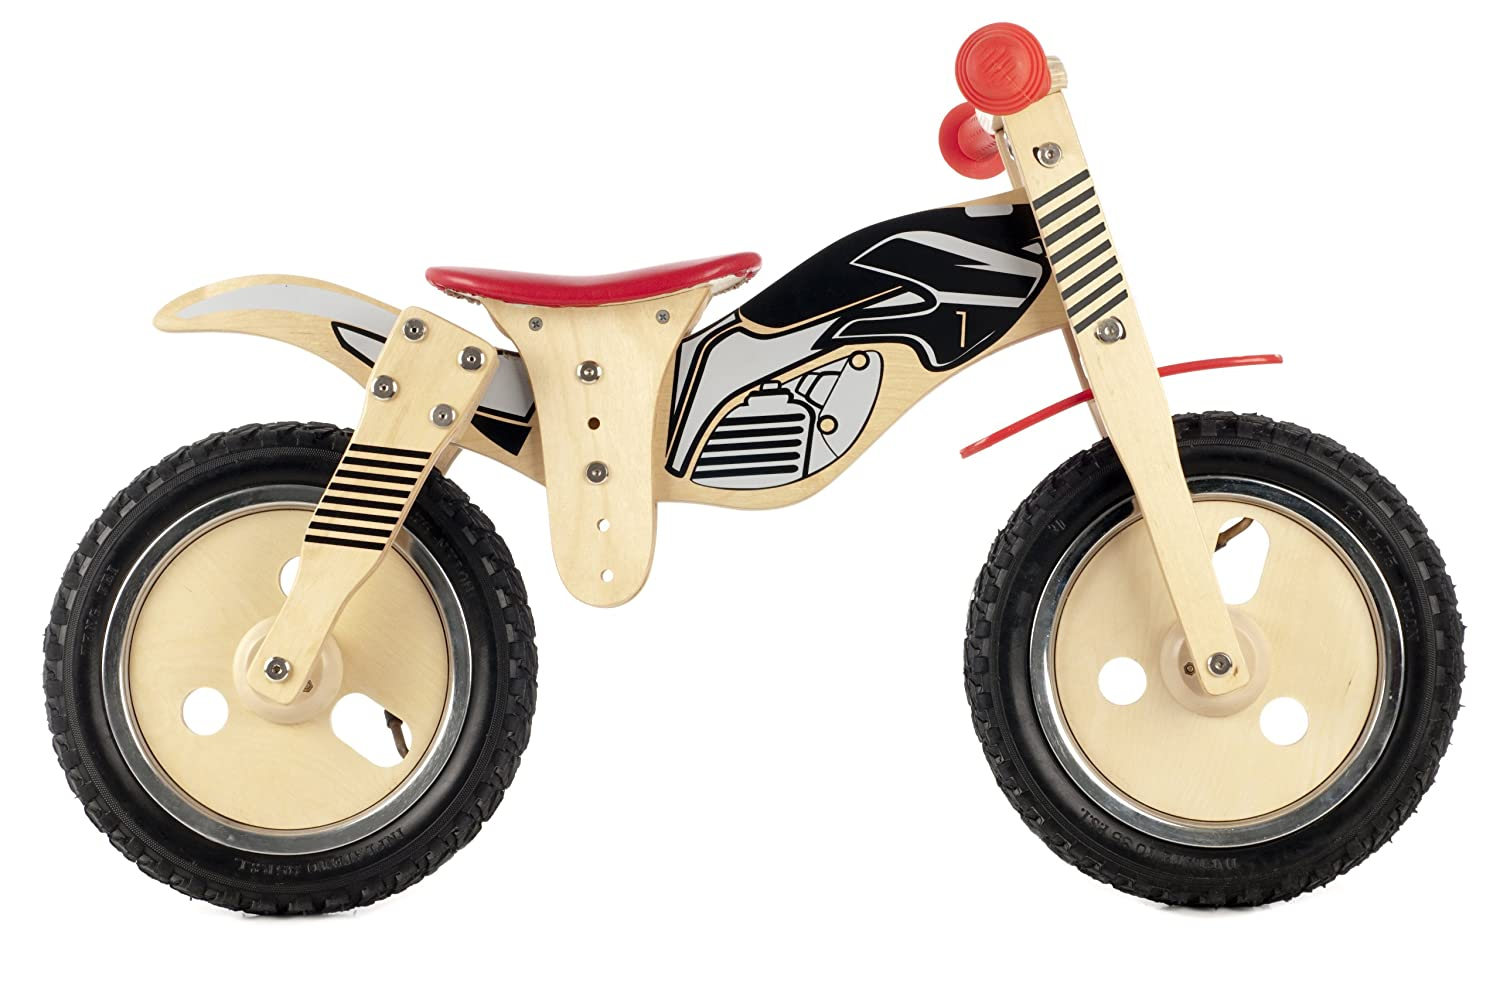 Amazon.com: Chopper bicicleta de equilibrio: Toys & Games